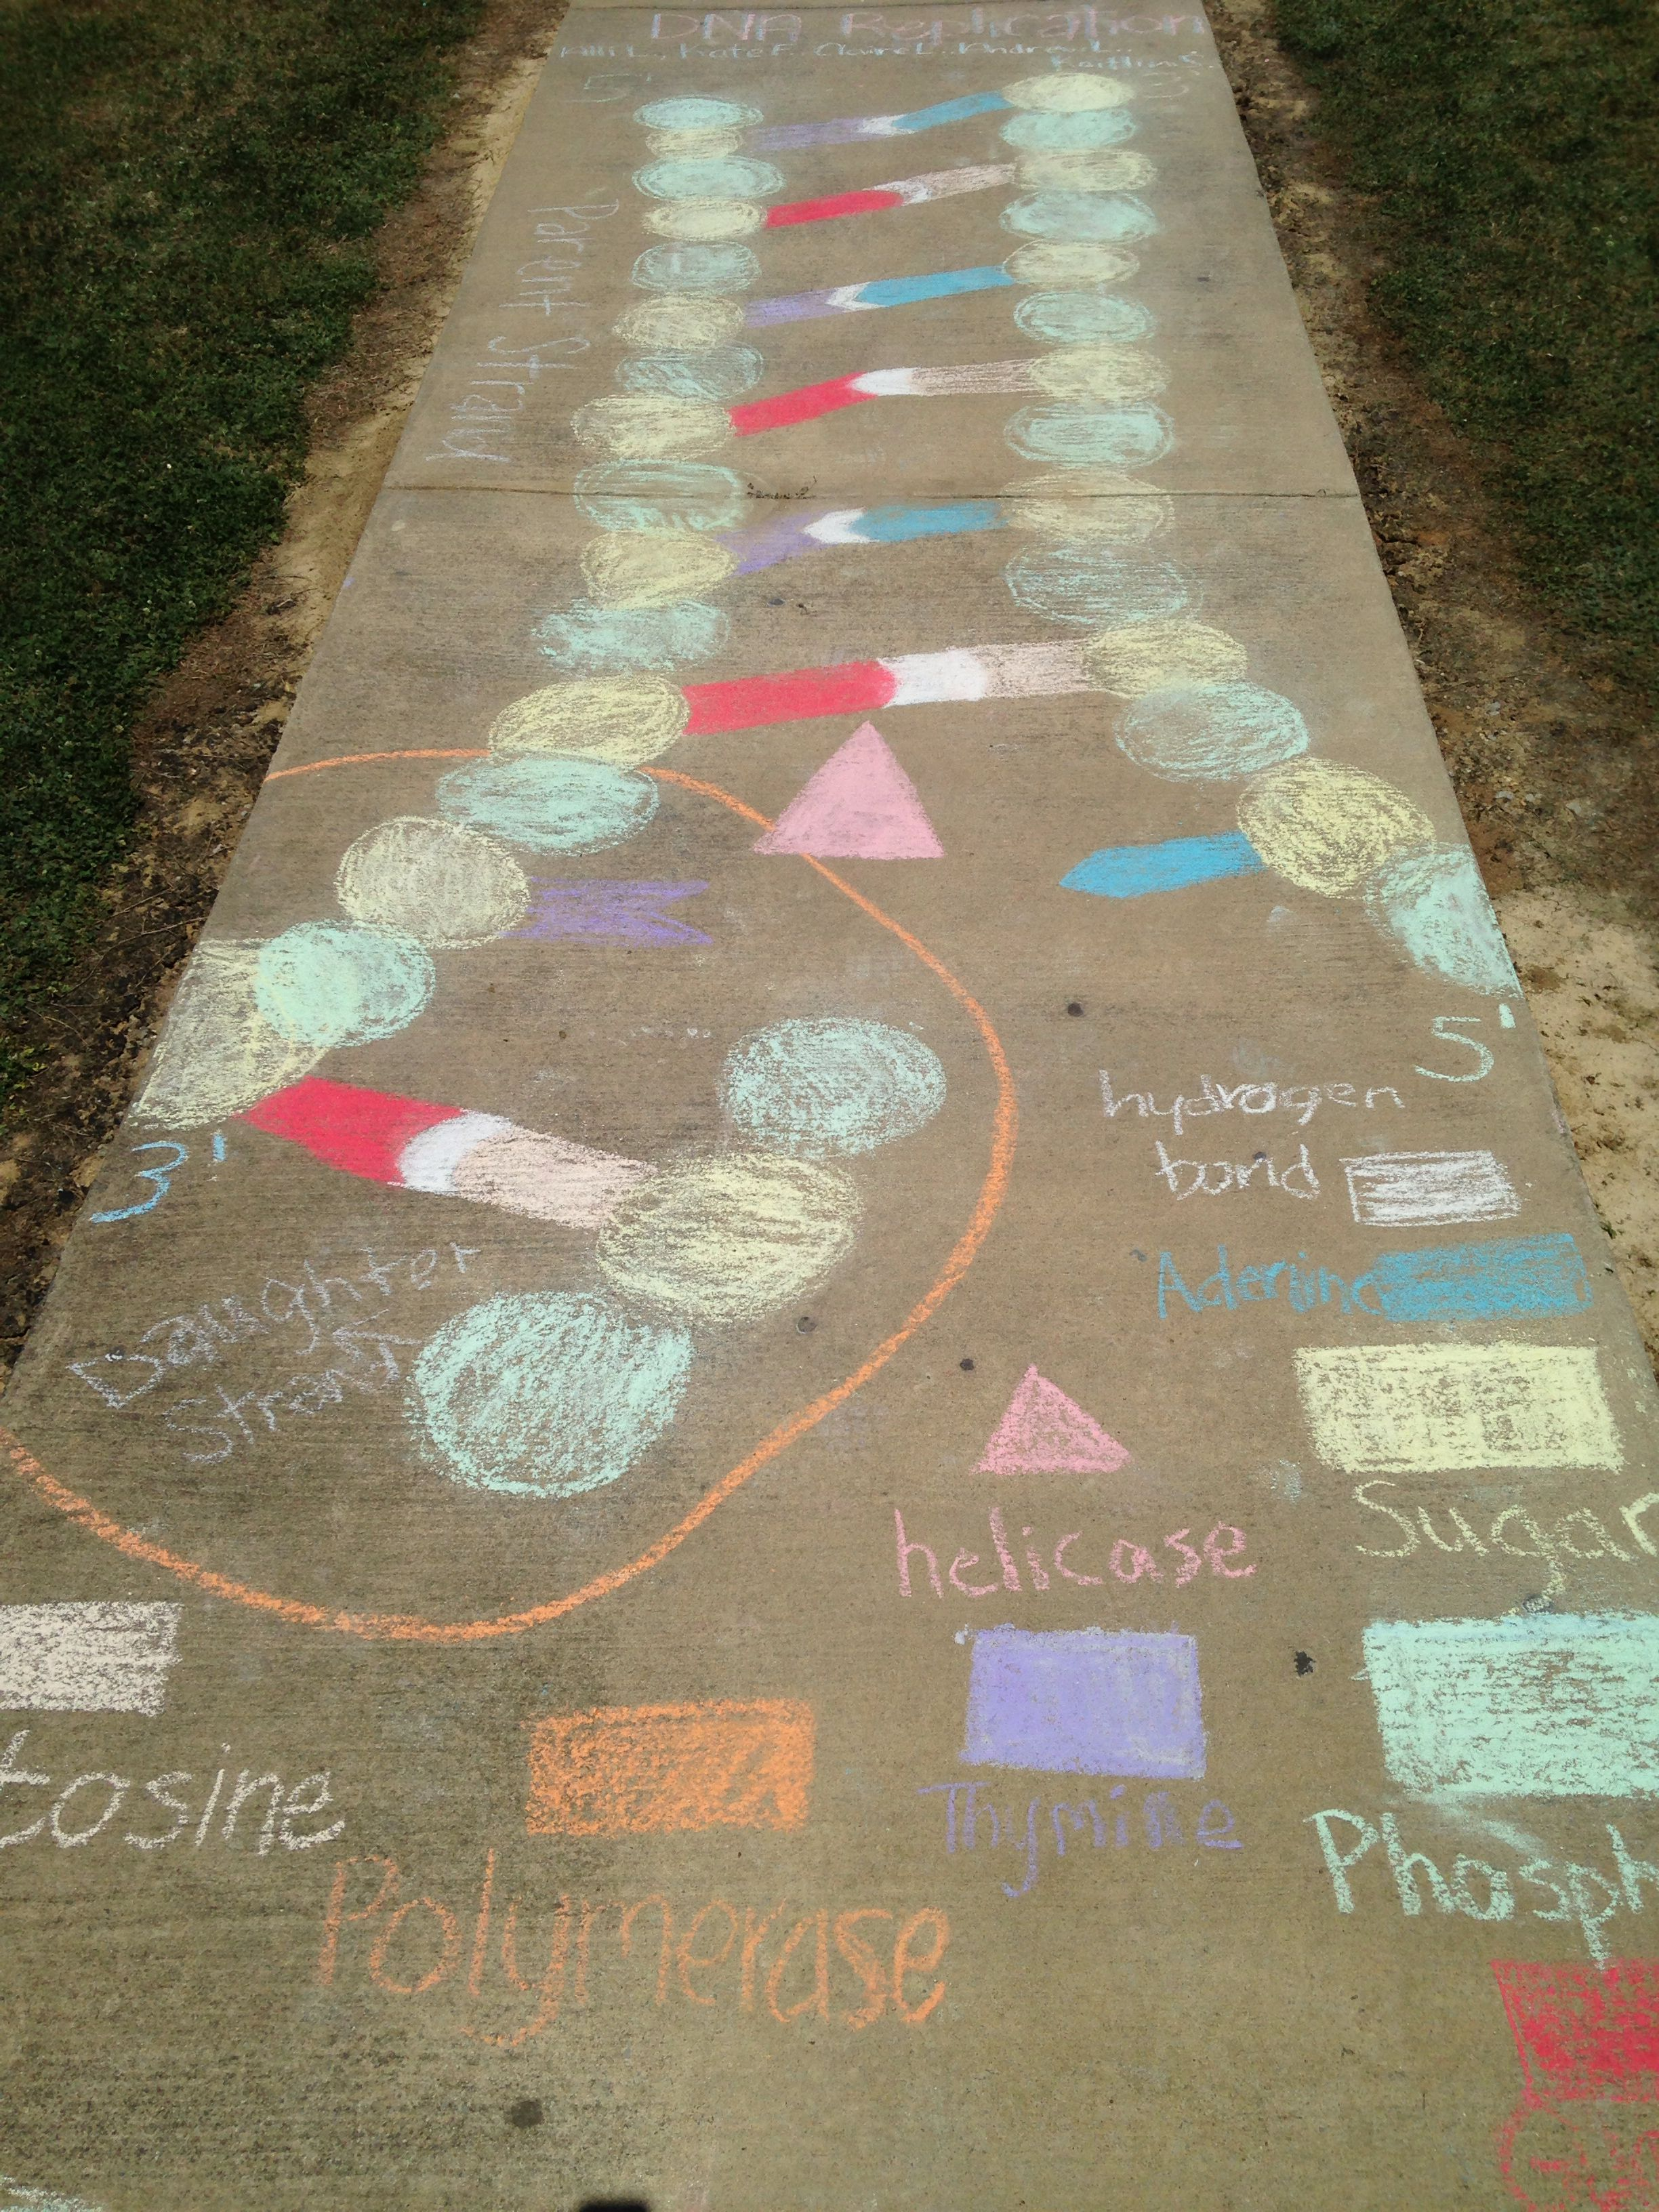 Biology Genetics Activity Dna Replication Models My Class Made With Chalk On Our Sidewalks